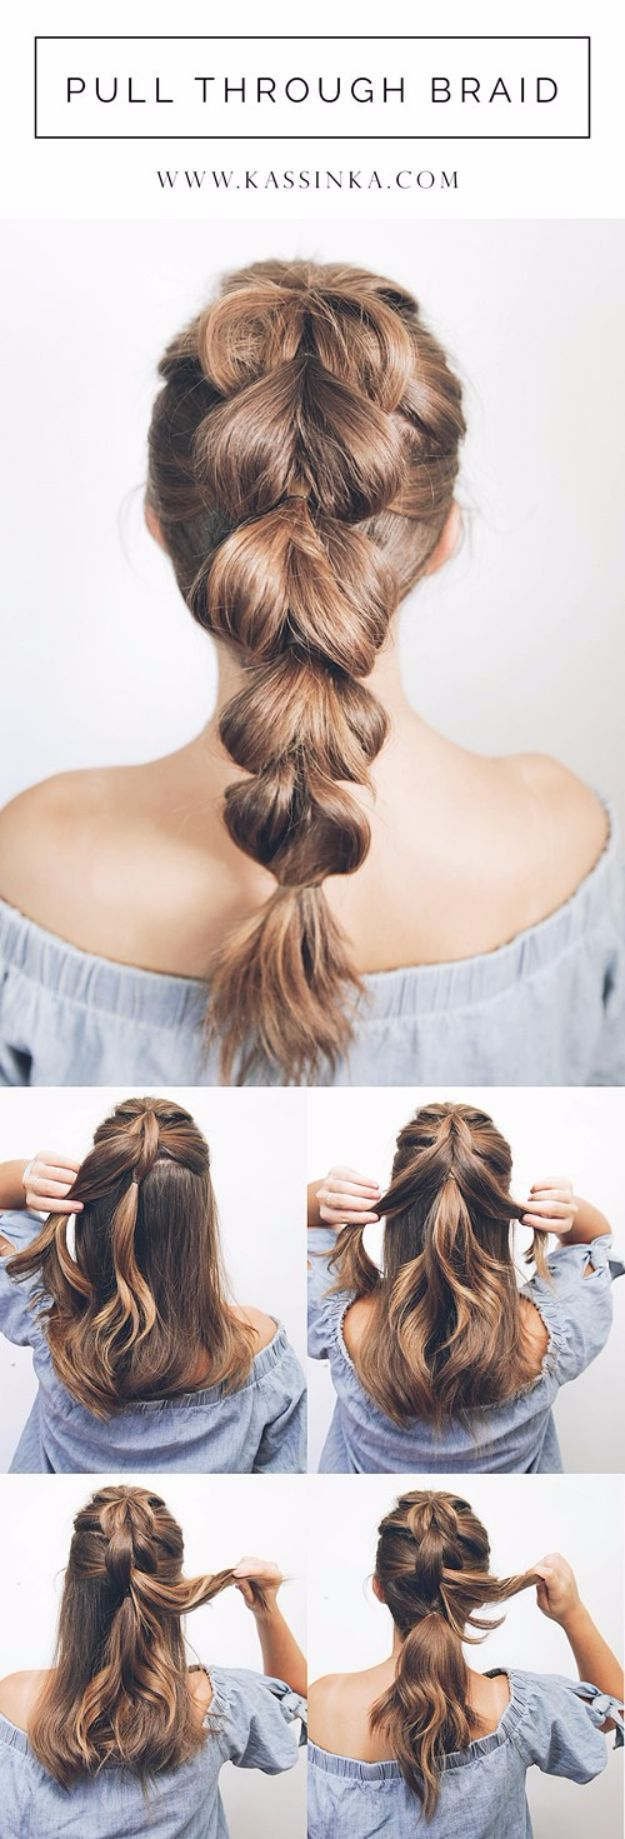 33 cool hair guides for the summer